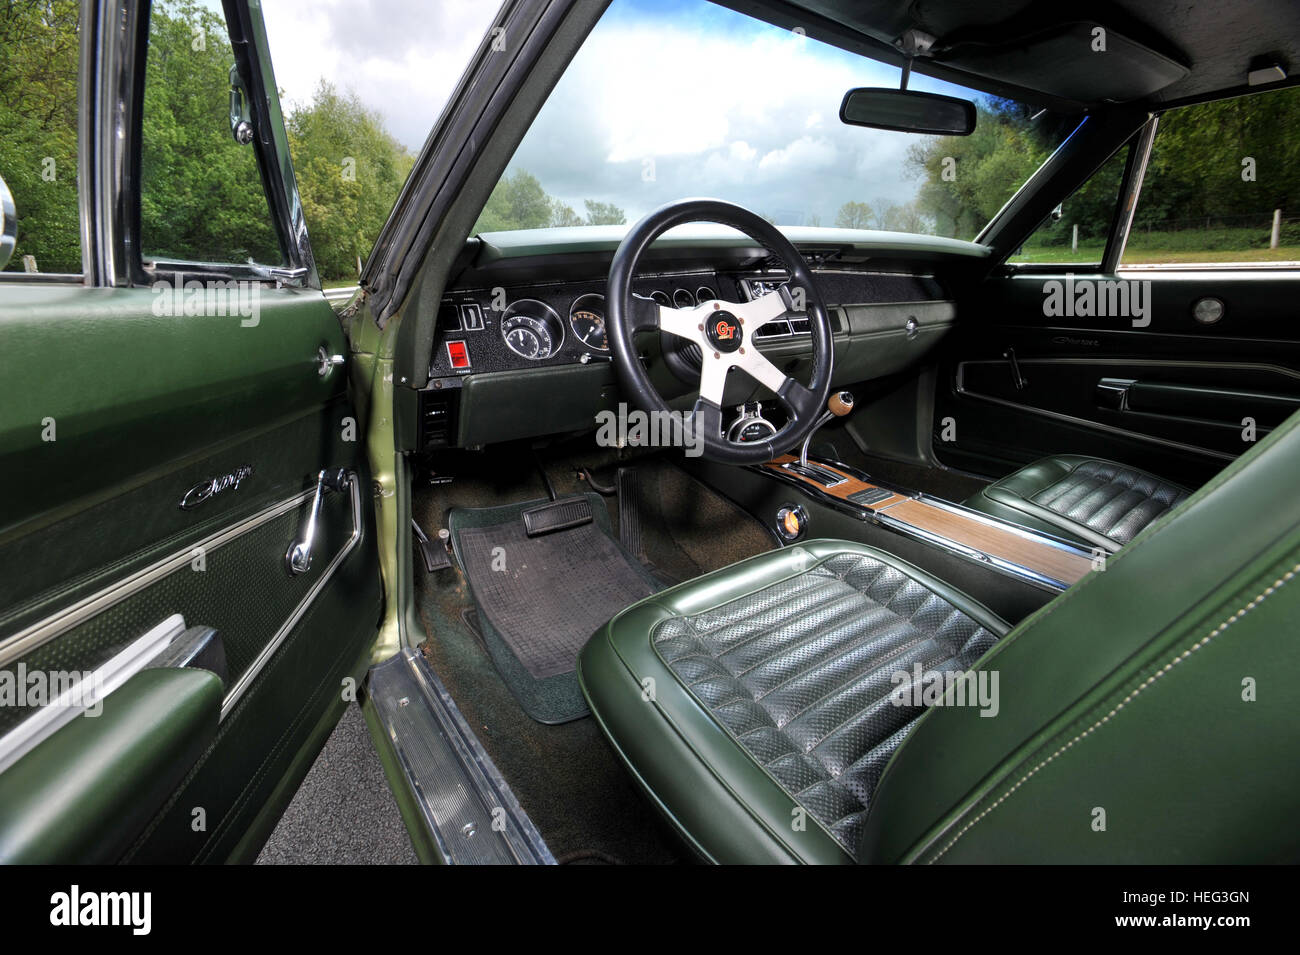 1970 Dodge Charger 500 classic American muscle car interior bucket ...